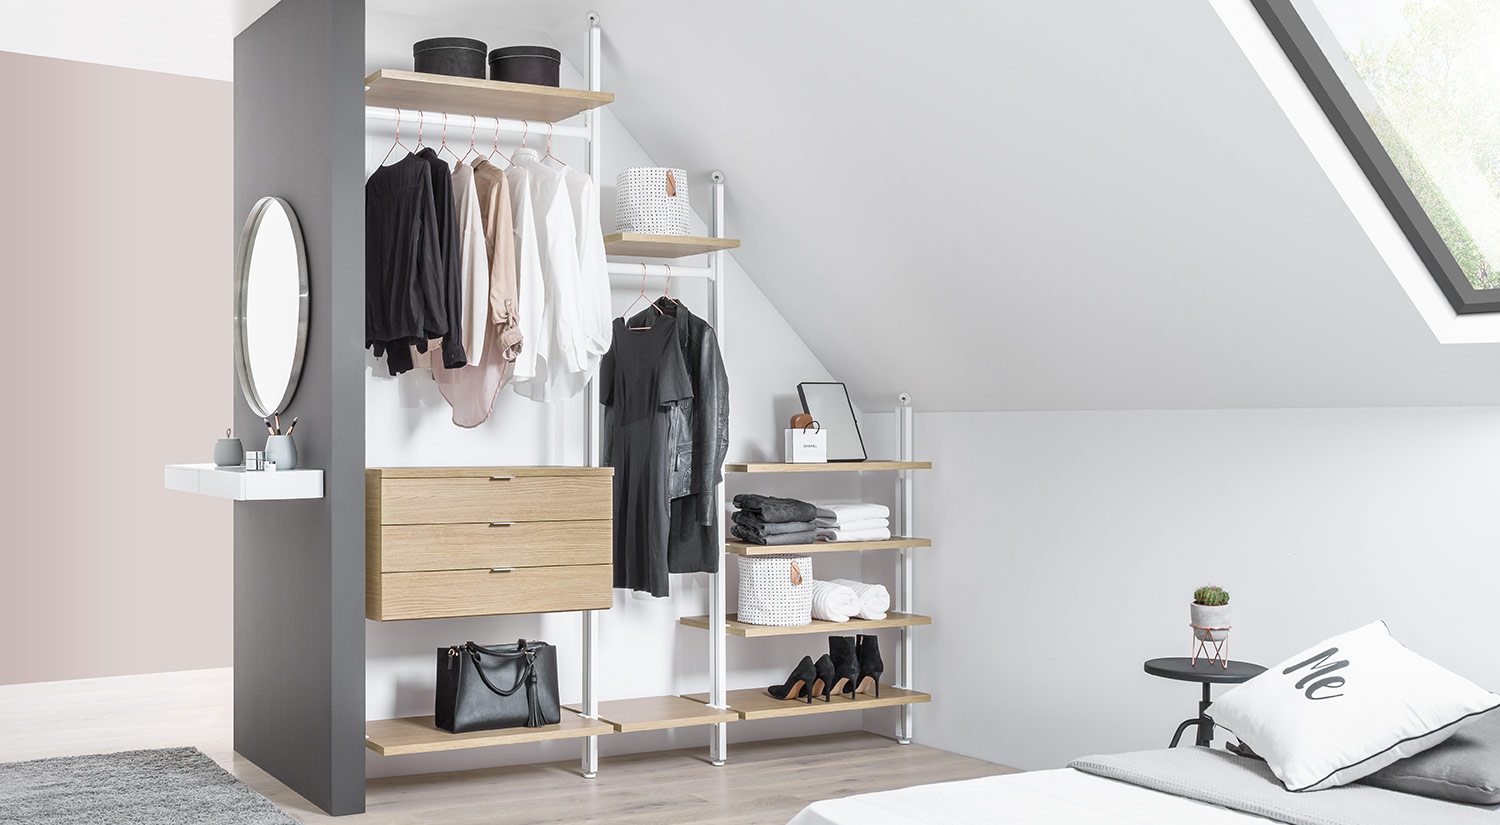 Clothes rack - CLOS-IT open wardrobe shelf under a slanted roof